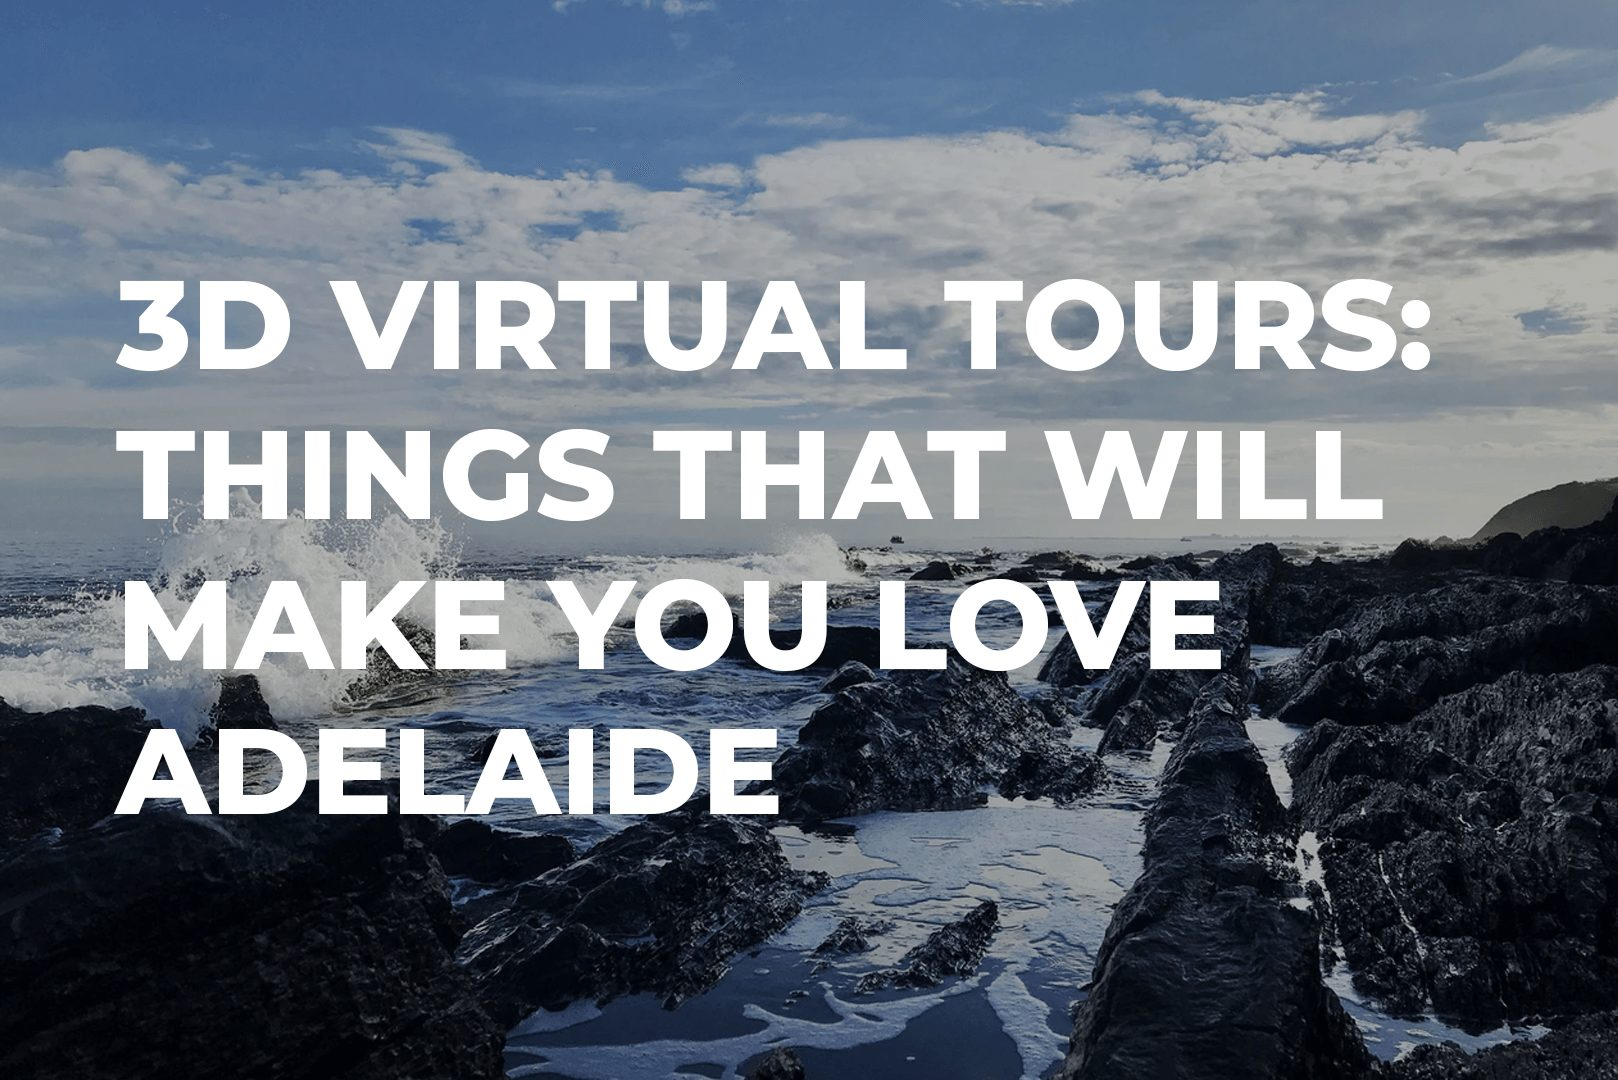 3D Virtual Tours: Things That Will Make You Love Adelaide